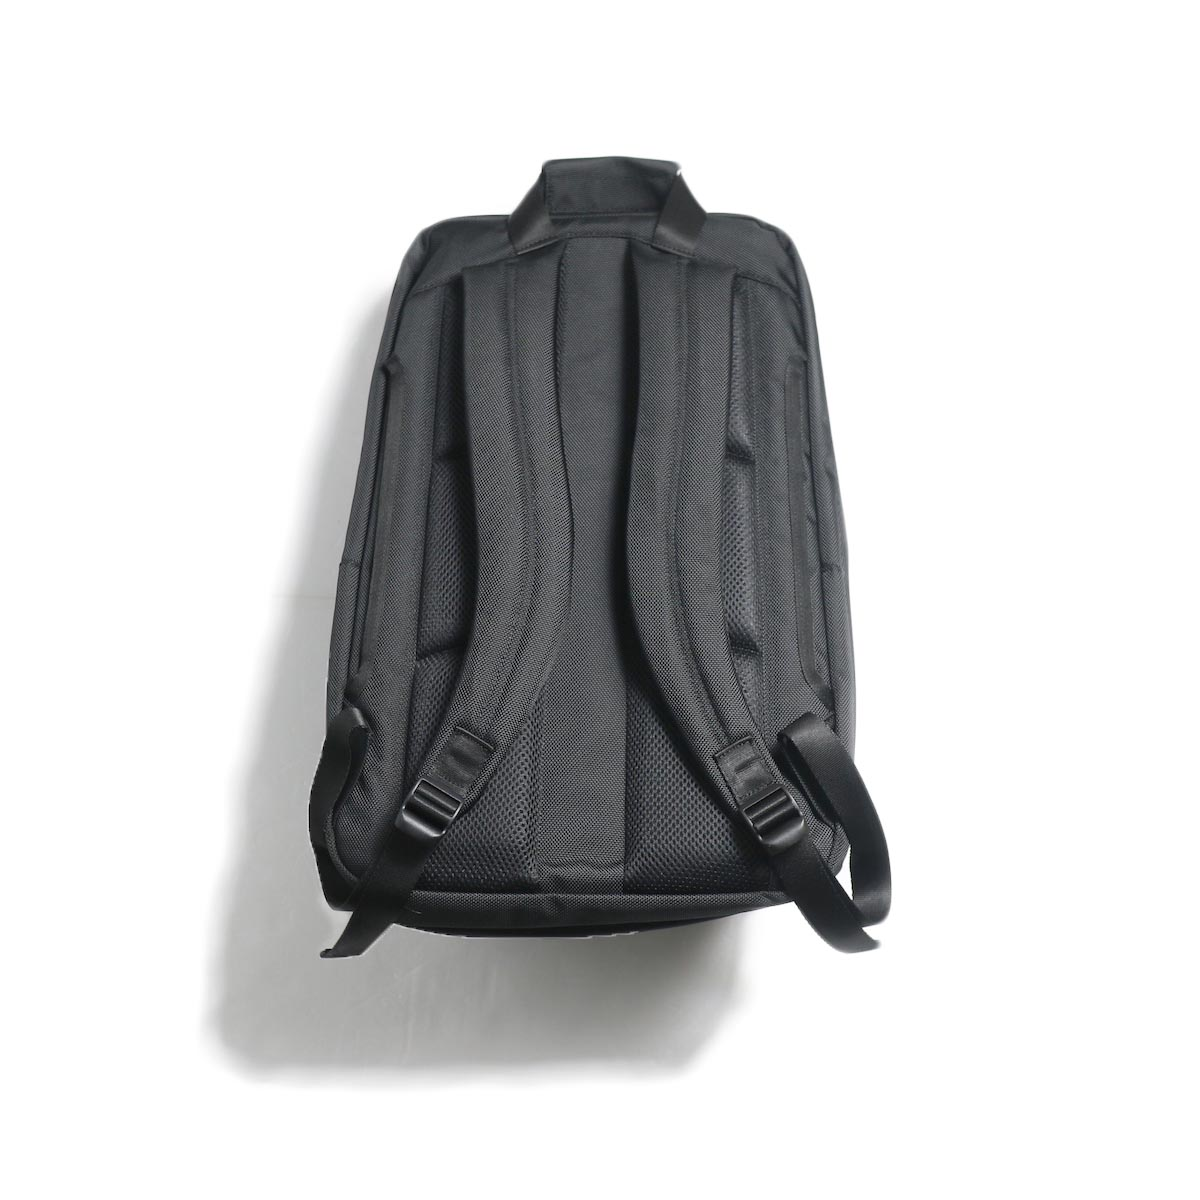 UNIVERSAL PRODUCTS / New Utility Bag -Black 背面